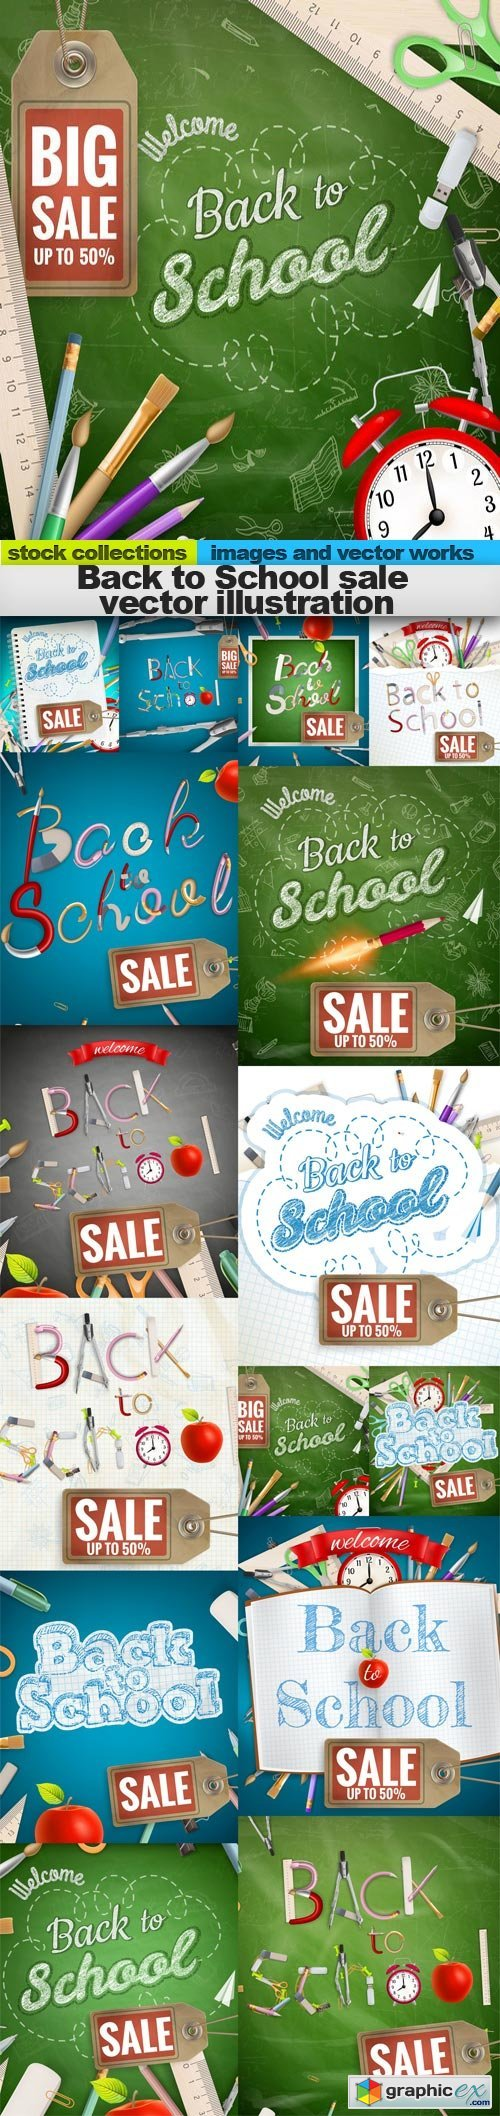 Back to School sale vector illustration, 15 x EPS